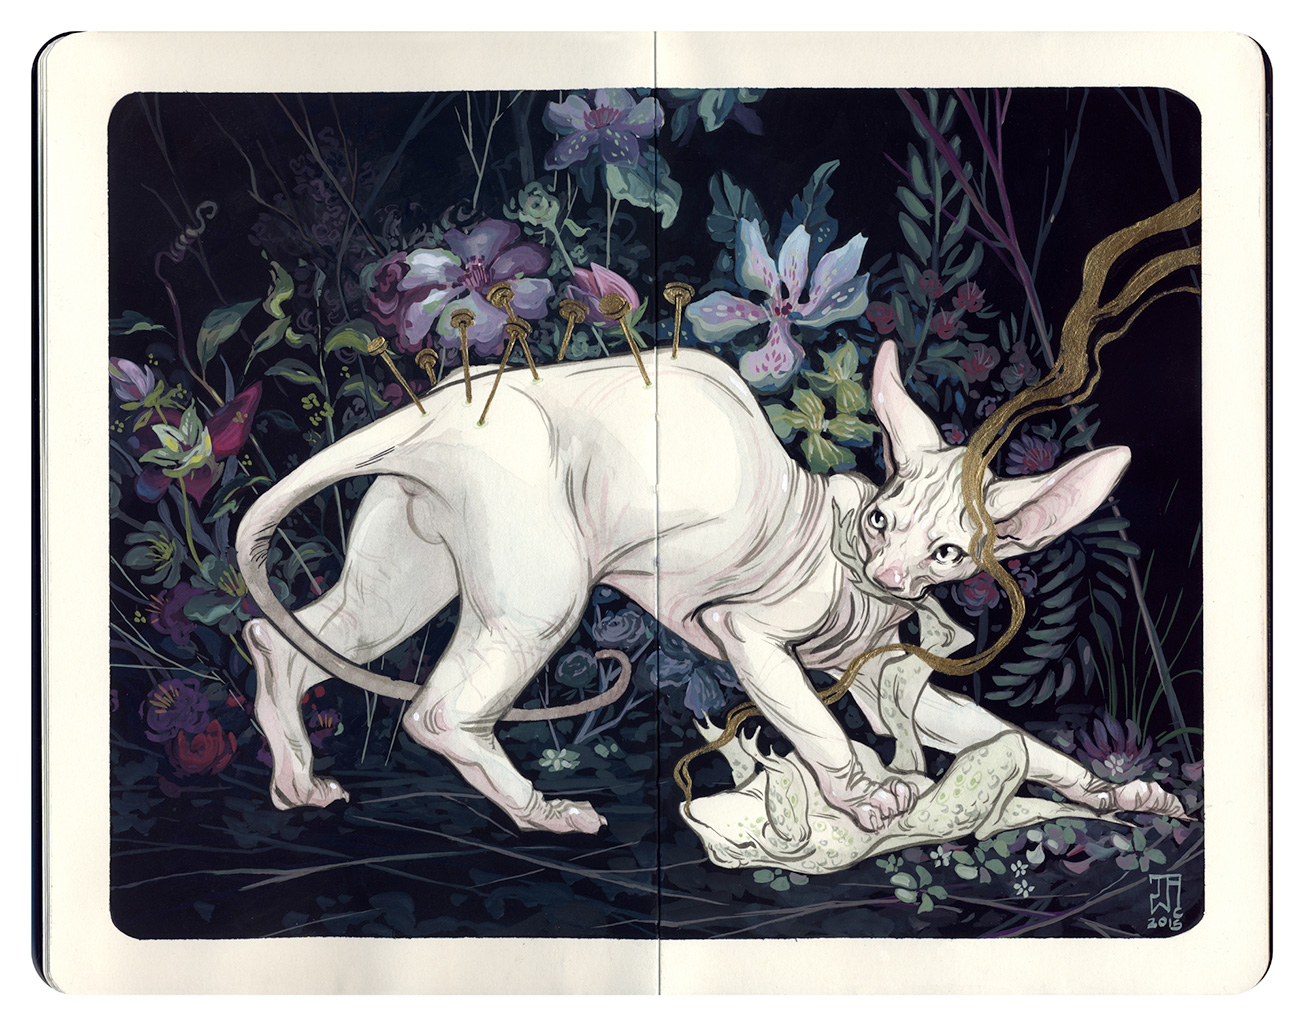 Color sketch of a hairless cat catching a frog in a forest setting